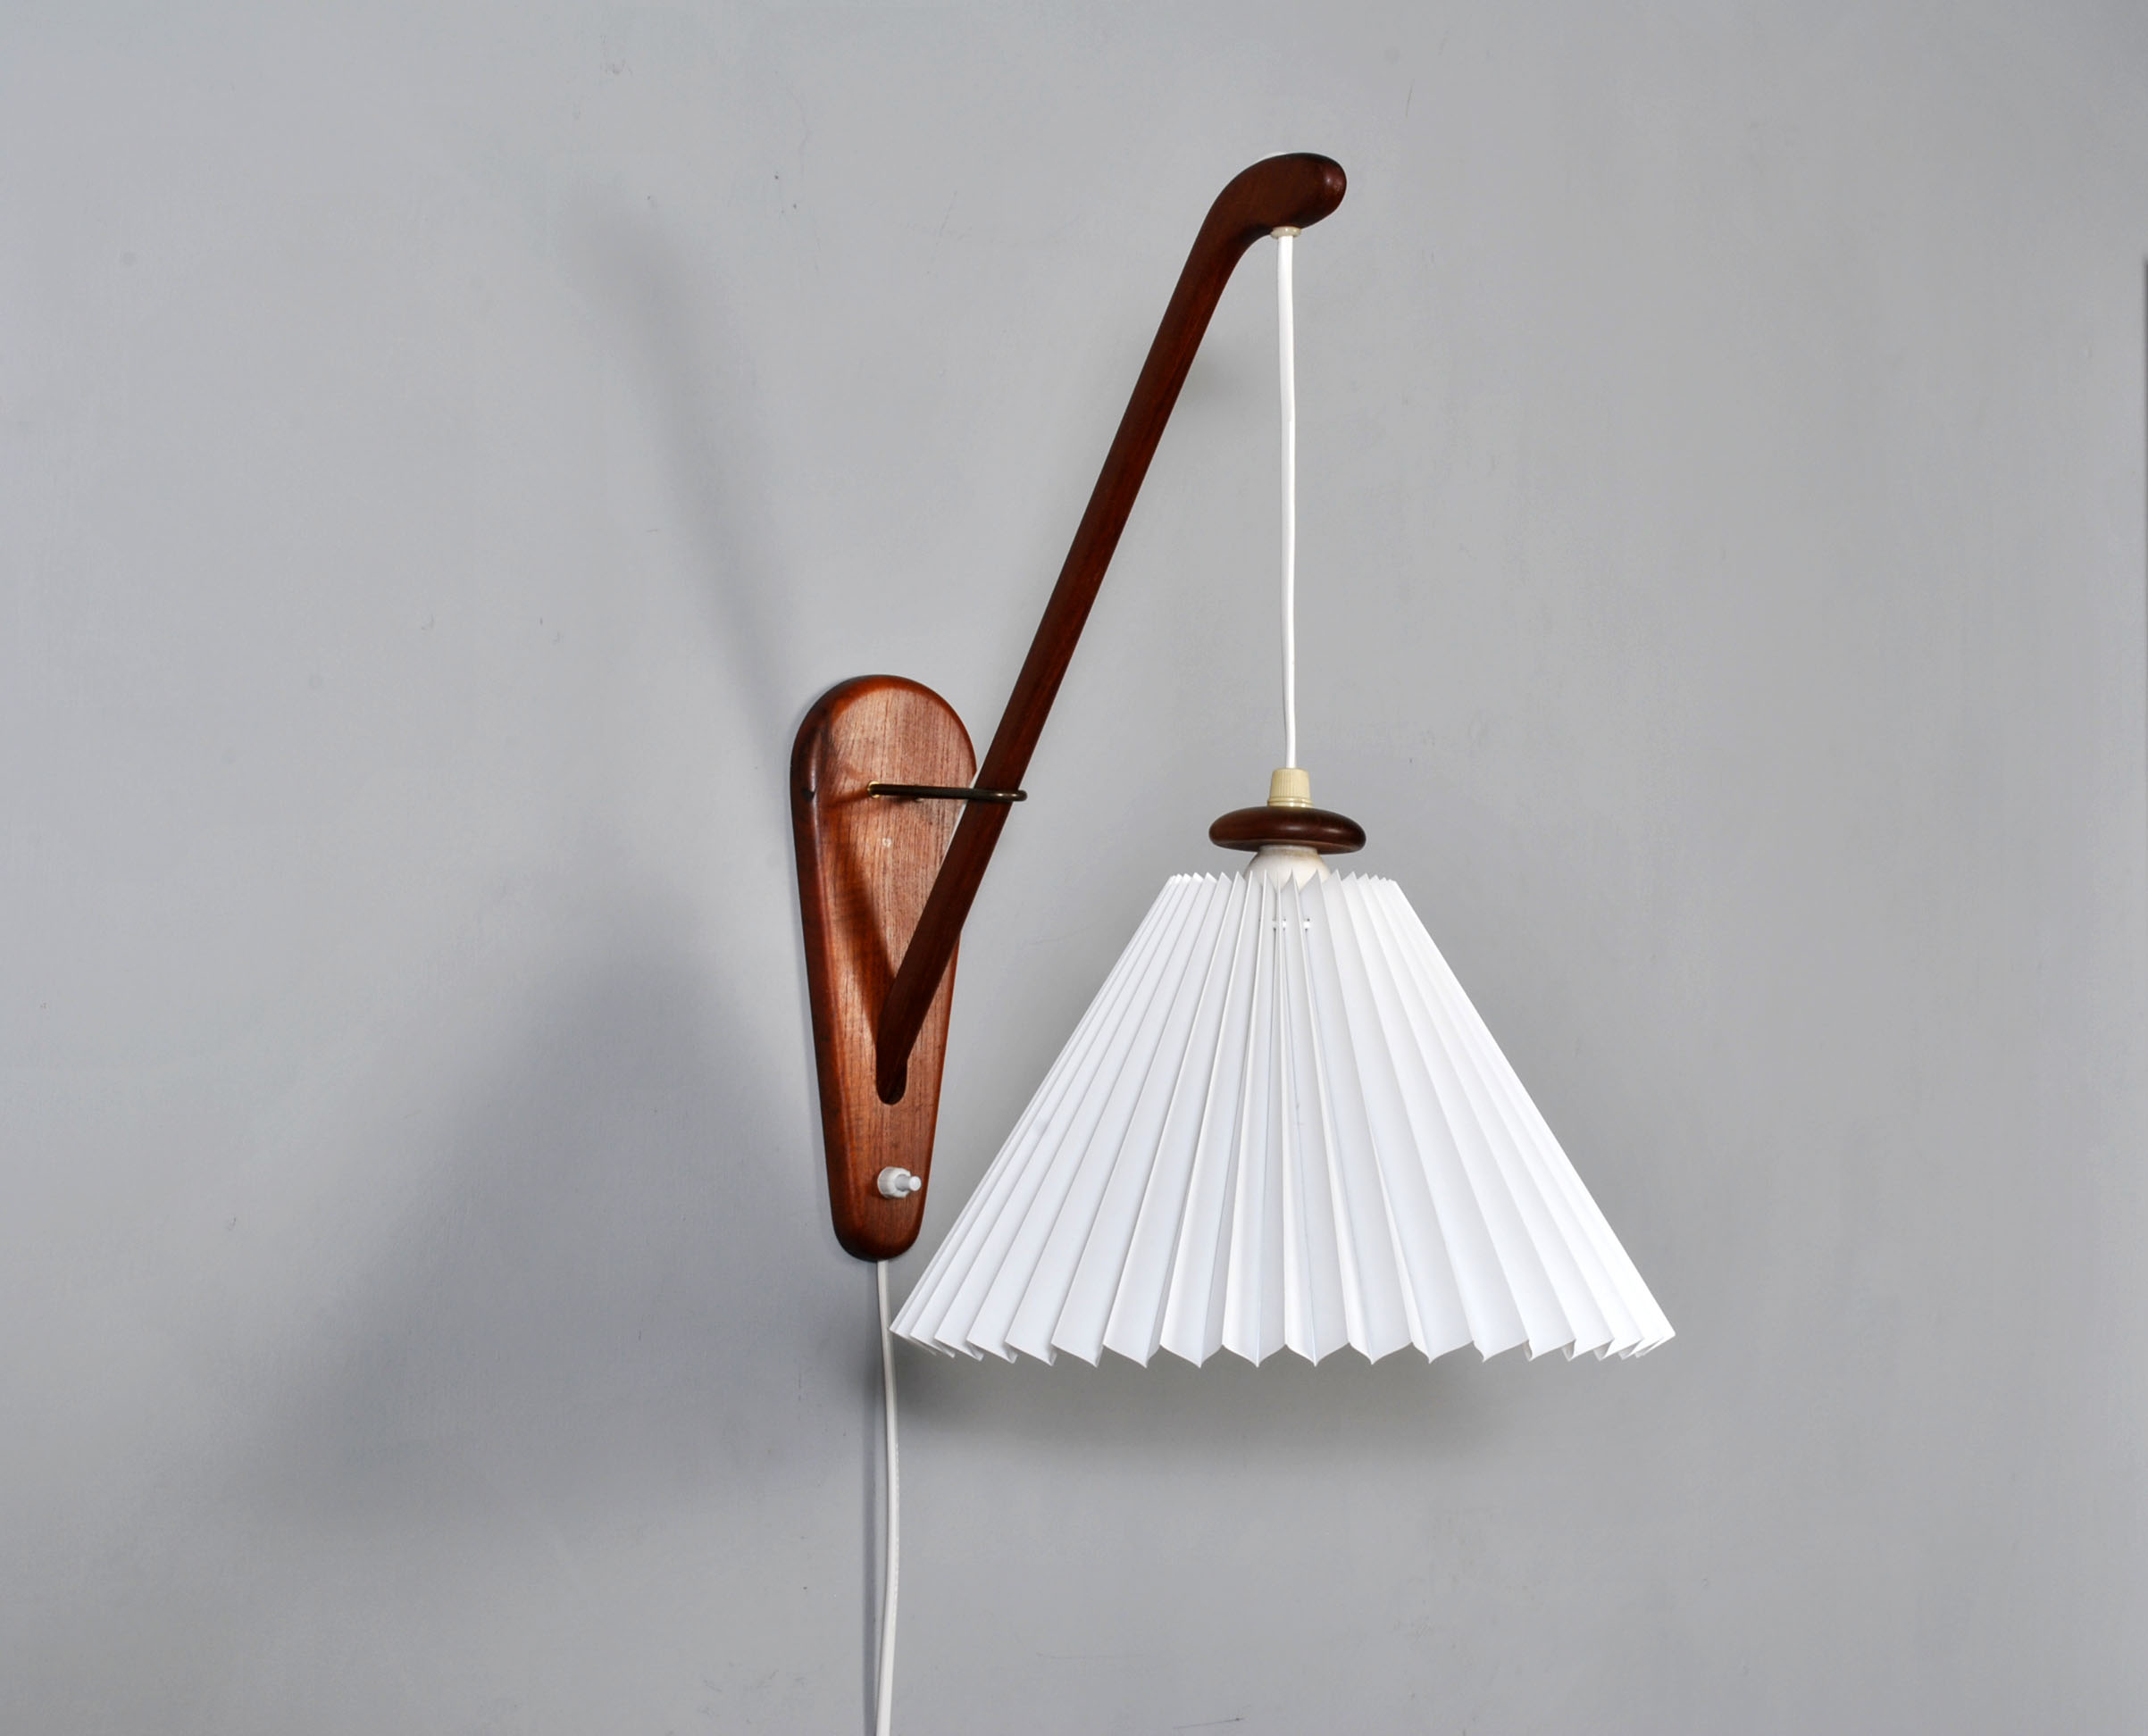 Midcentury Danish teak wall hanging lamp